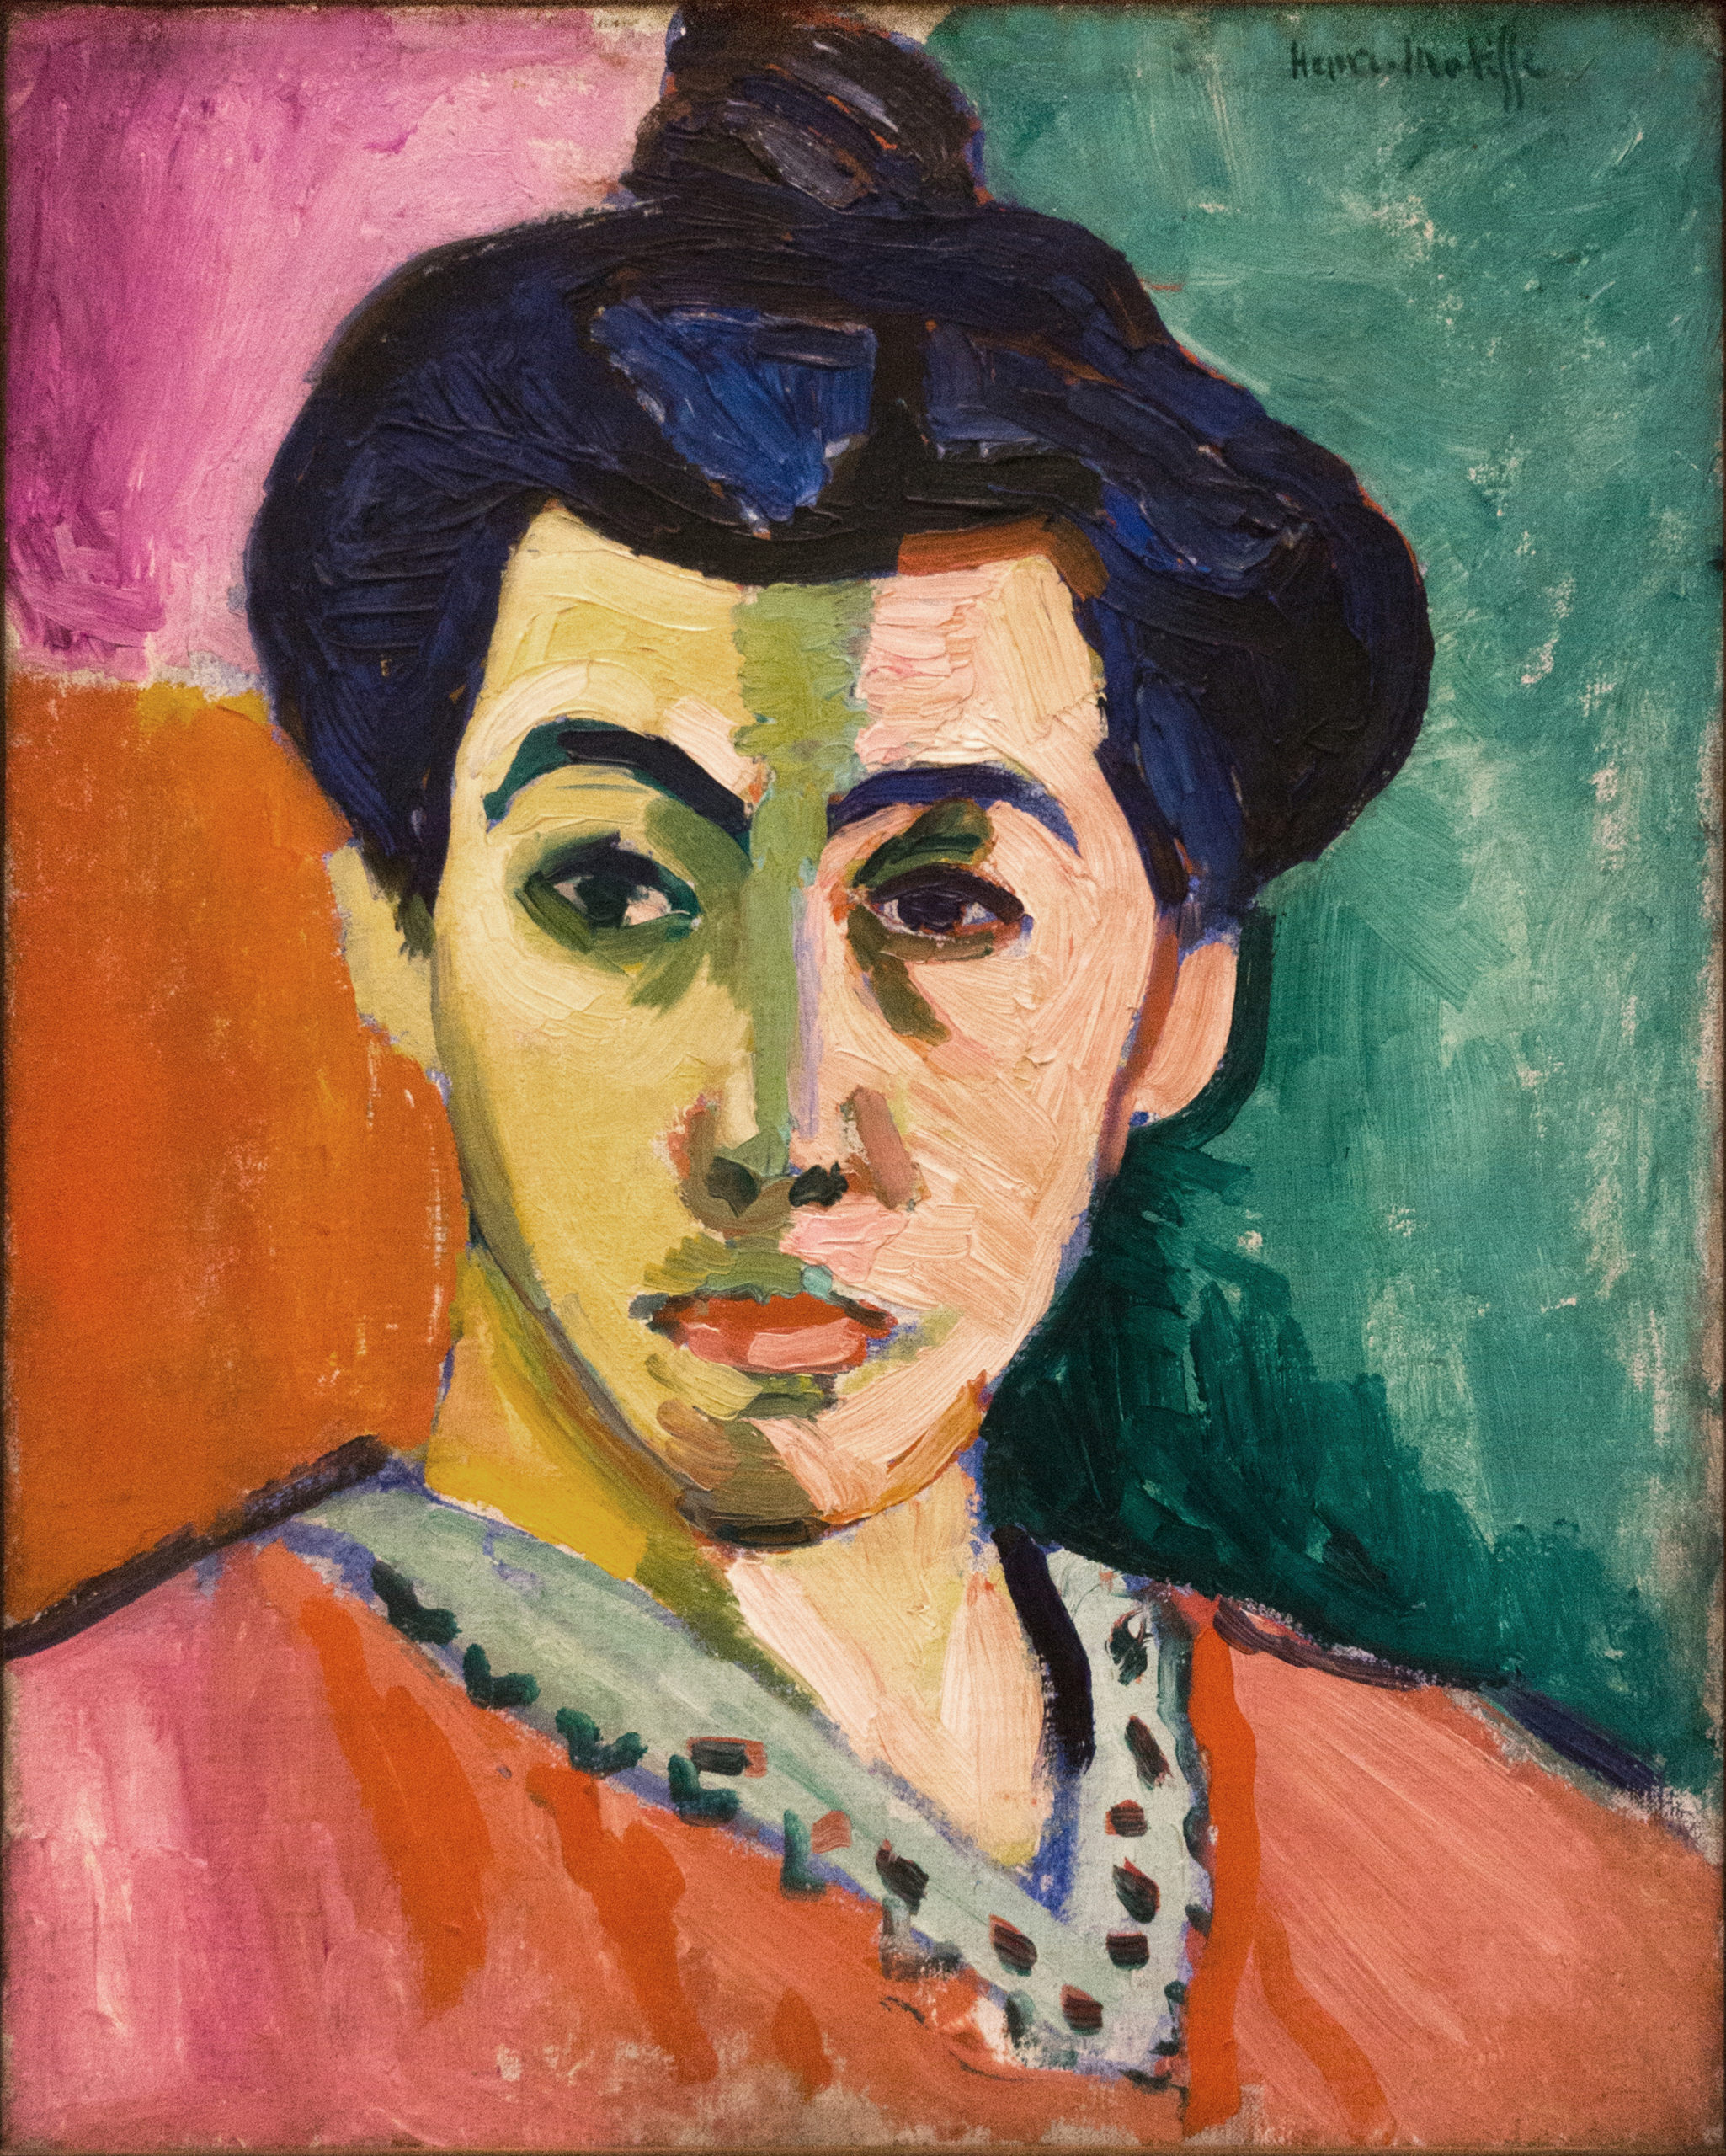 Henri Matisse, Portrait of Mme. Matisse: The Green Line, 1905, oil on canvas, 40.5 x 32.5 (Statens Museum for Kunst, Copenhagen)